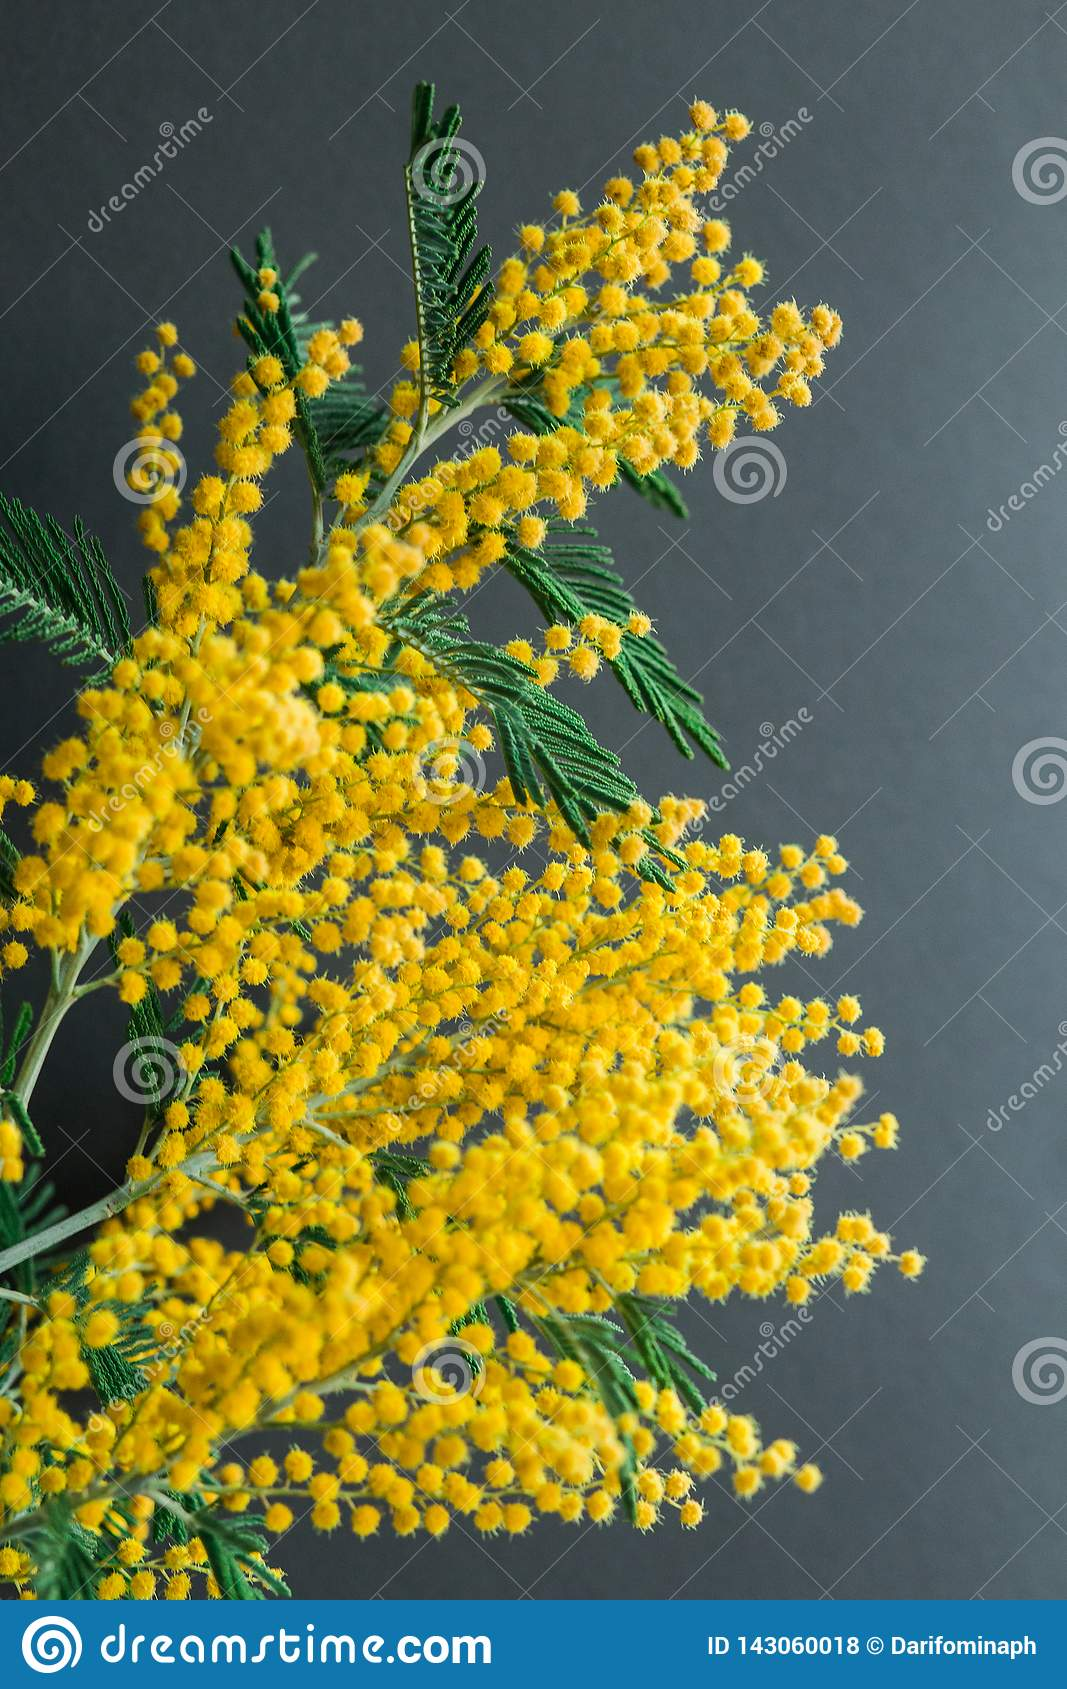 Spring gentle composition with Mimosa flowers on black background